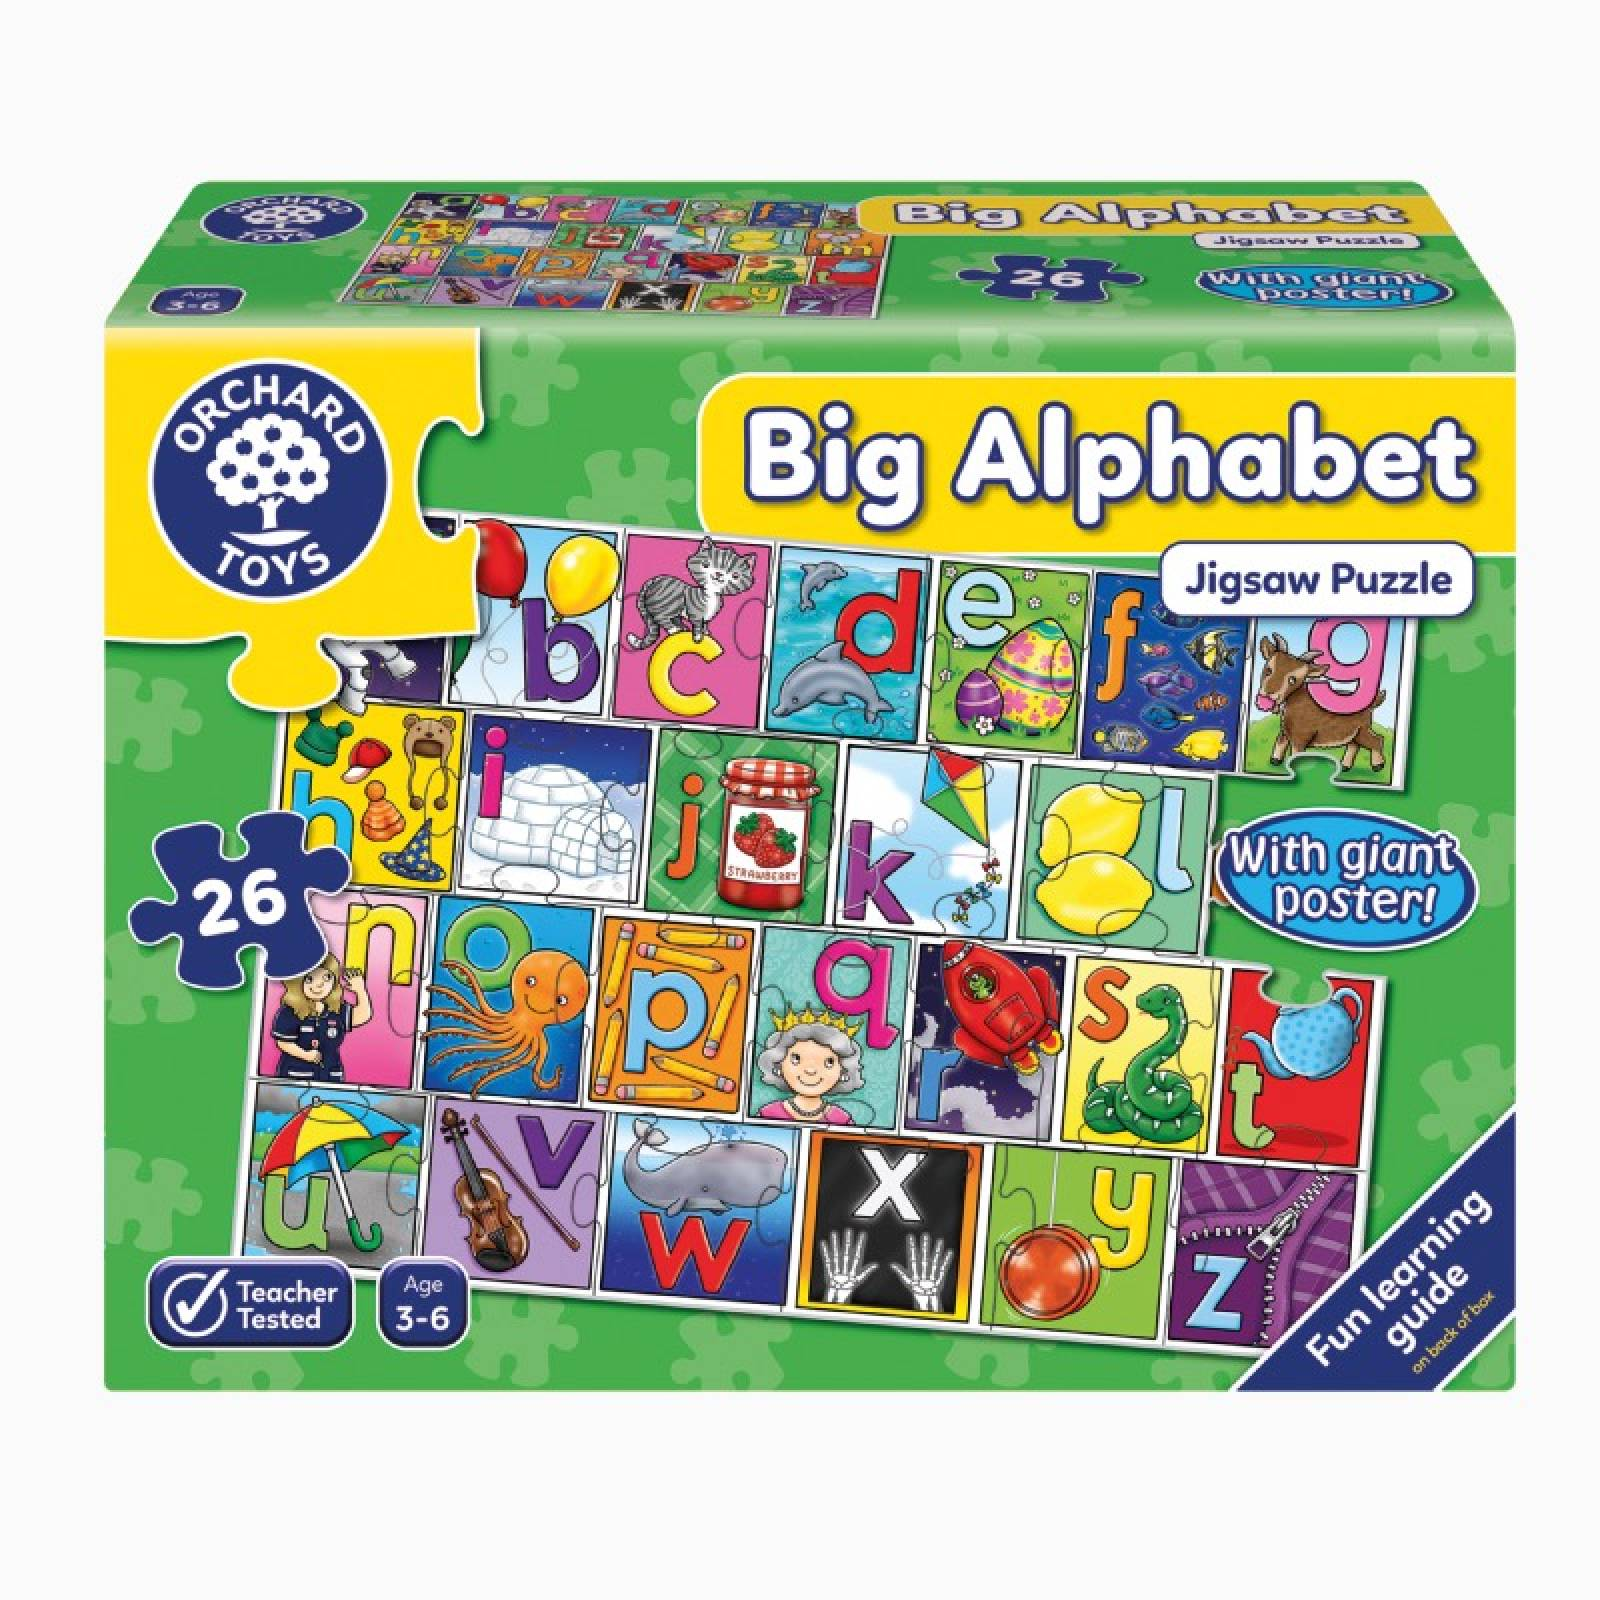 Big Alphabet - 26 Piece Jigsaw Puzzle By Orchard Toys 3+